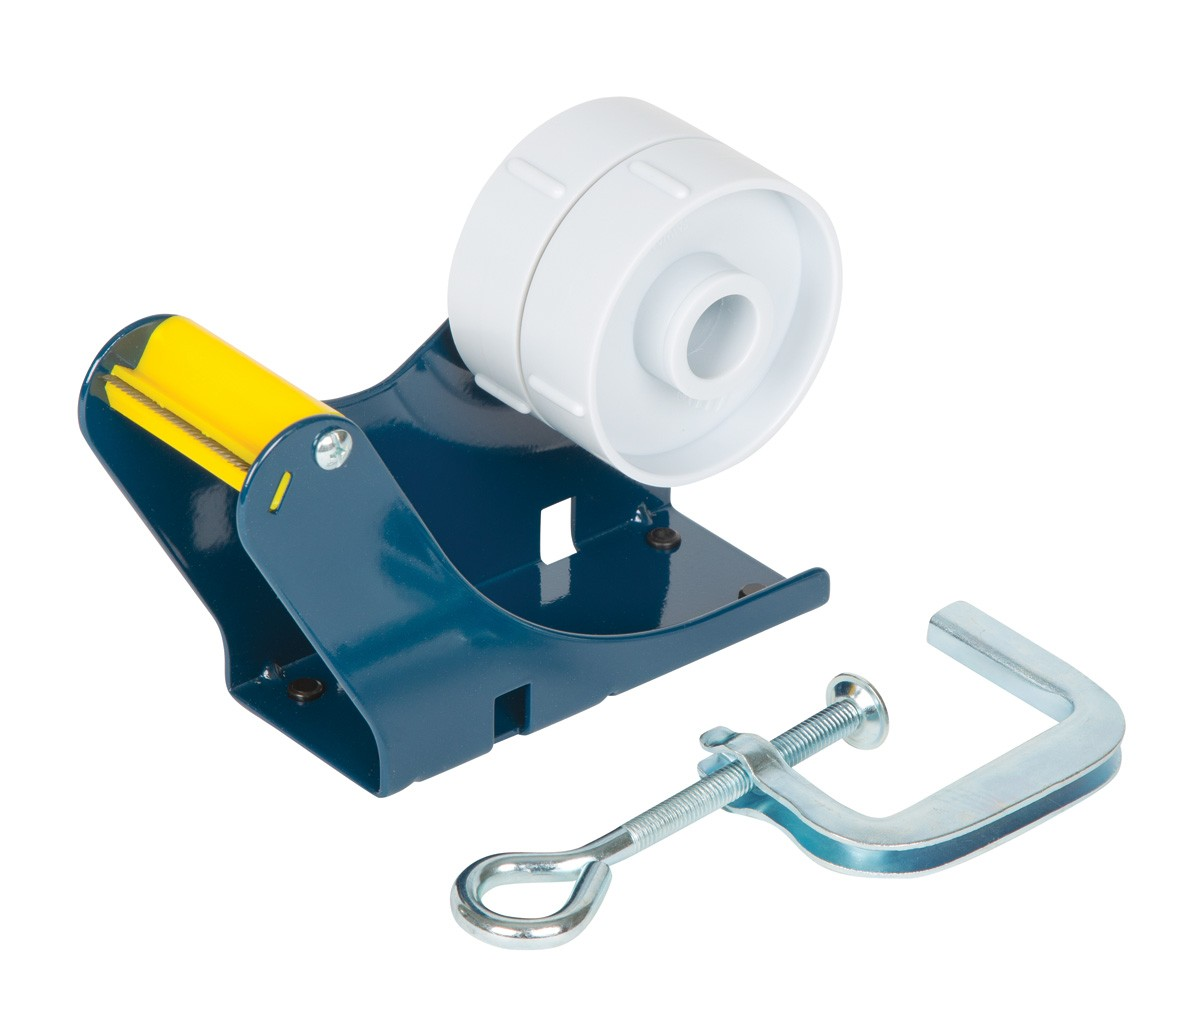 TAPE DISPENSER PACPLUS BENCH CLAMP 50mm WIDE